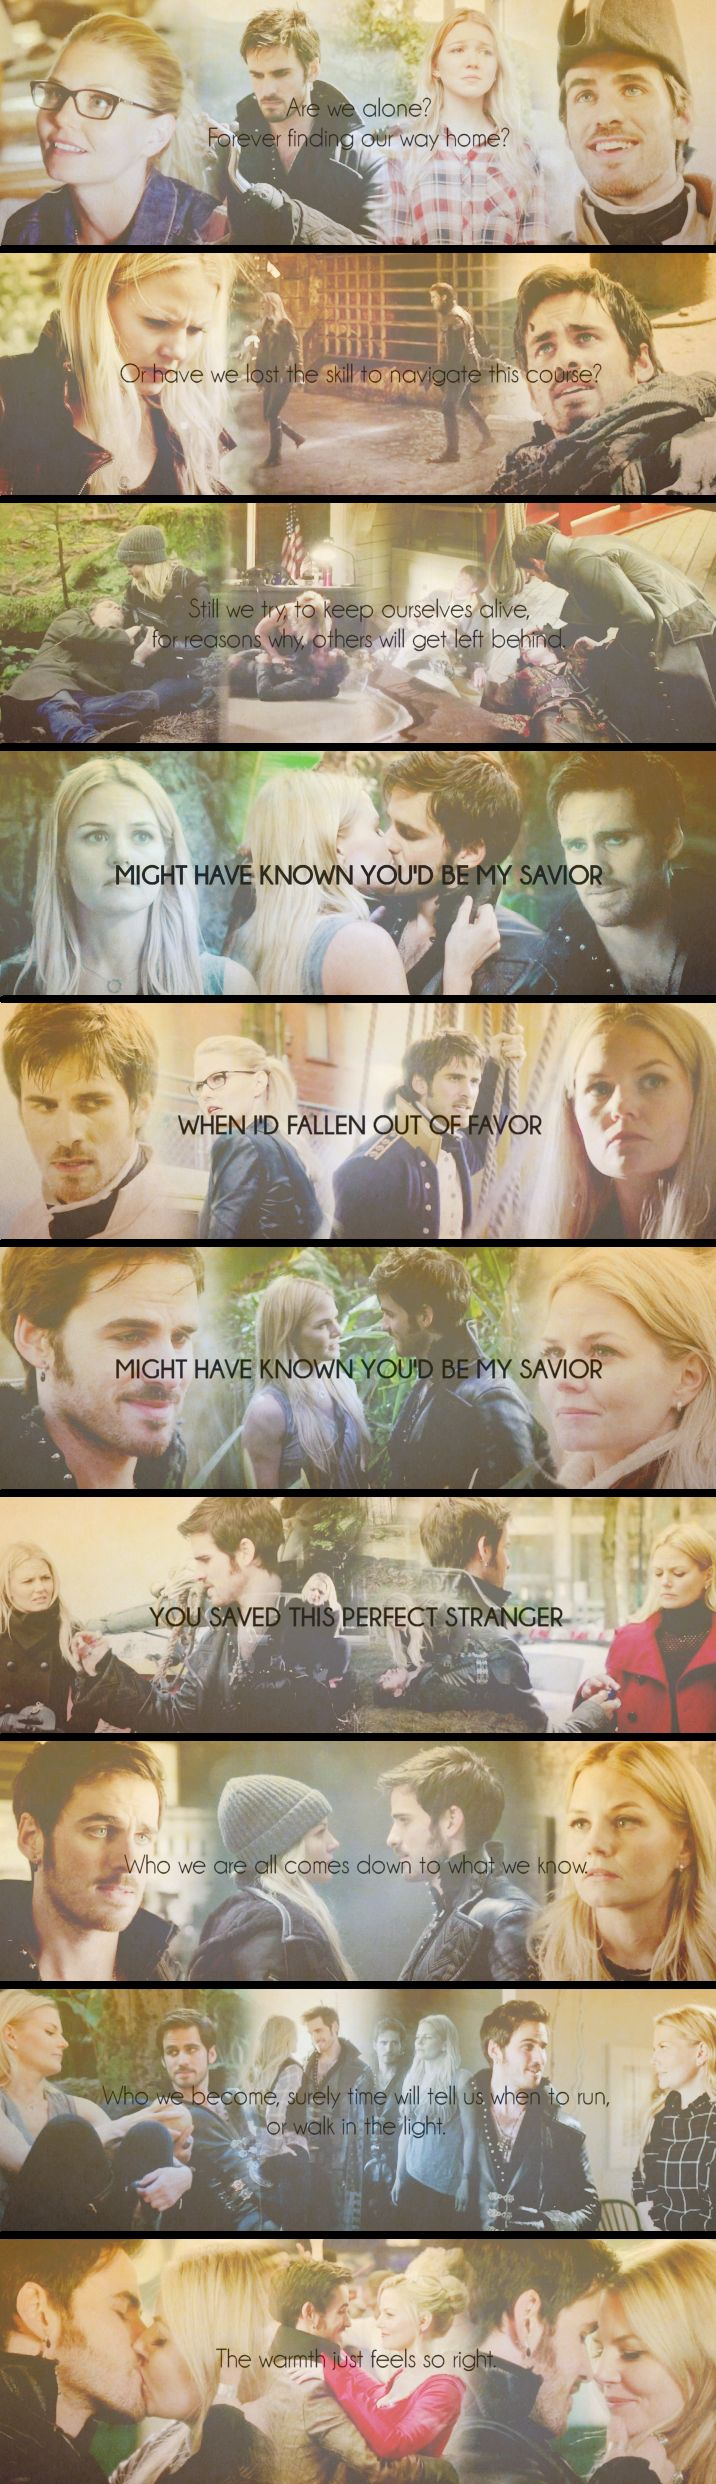 Captain Swan - The two missing pieces of a puzzle.